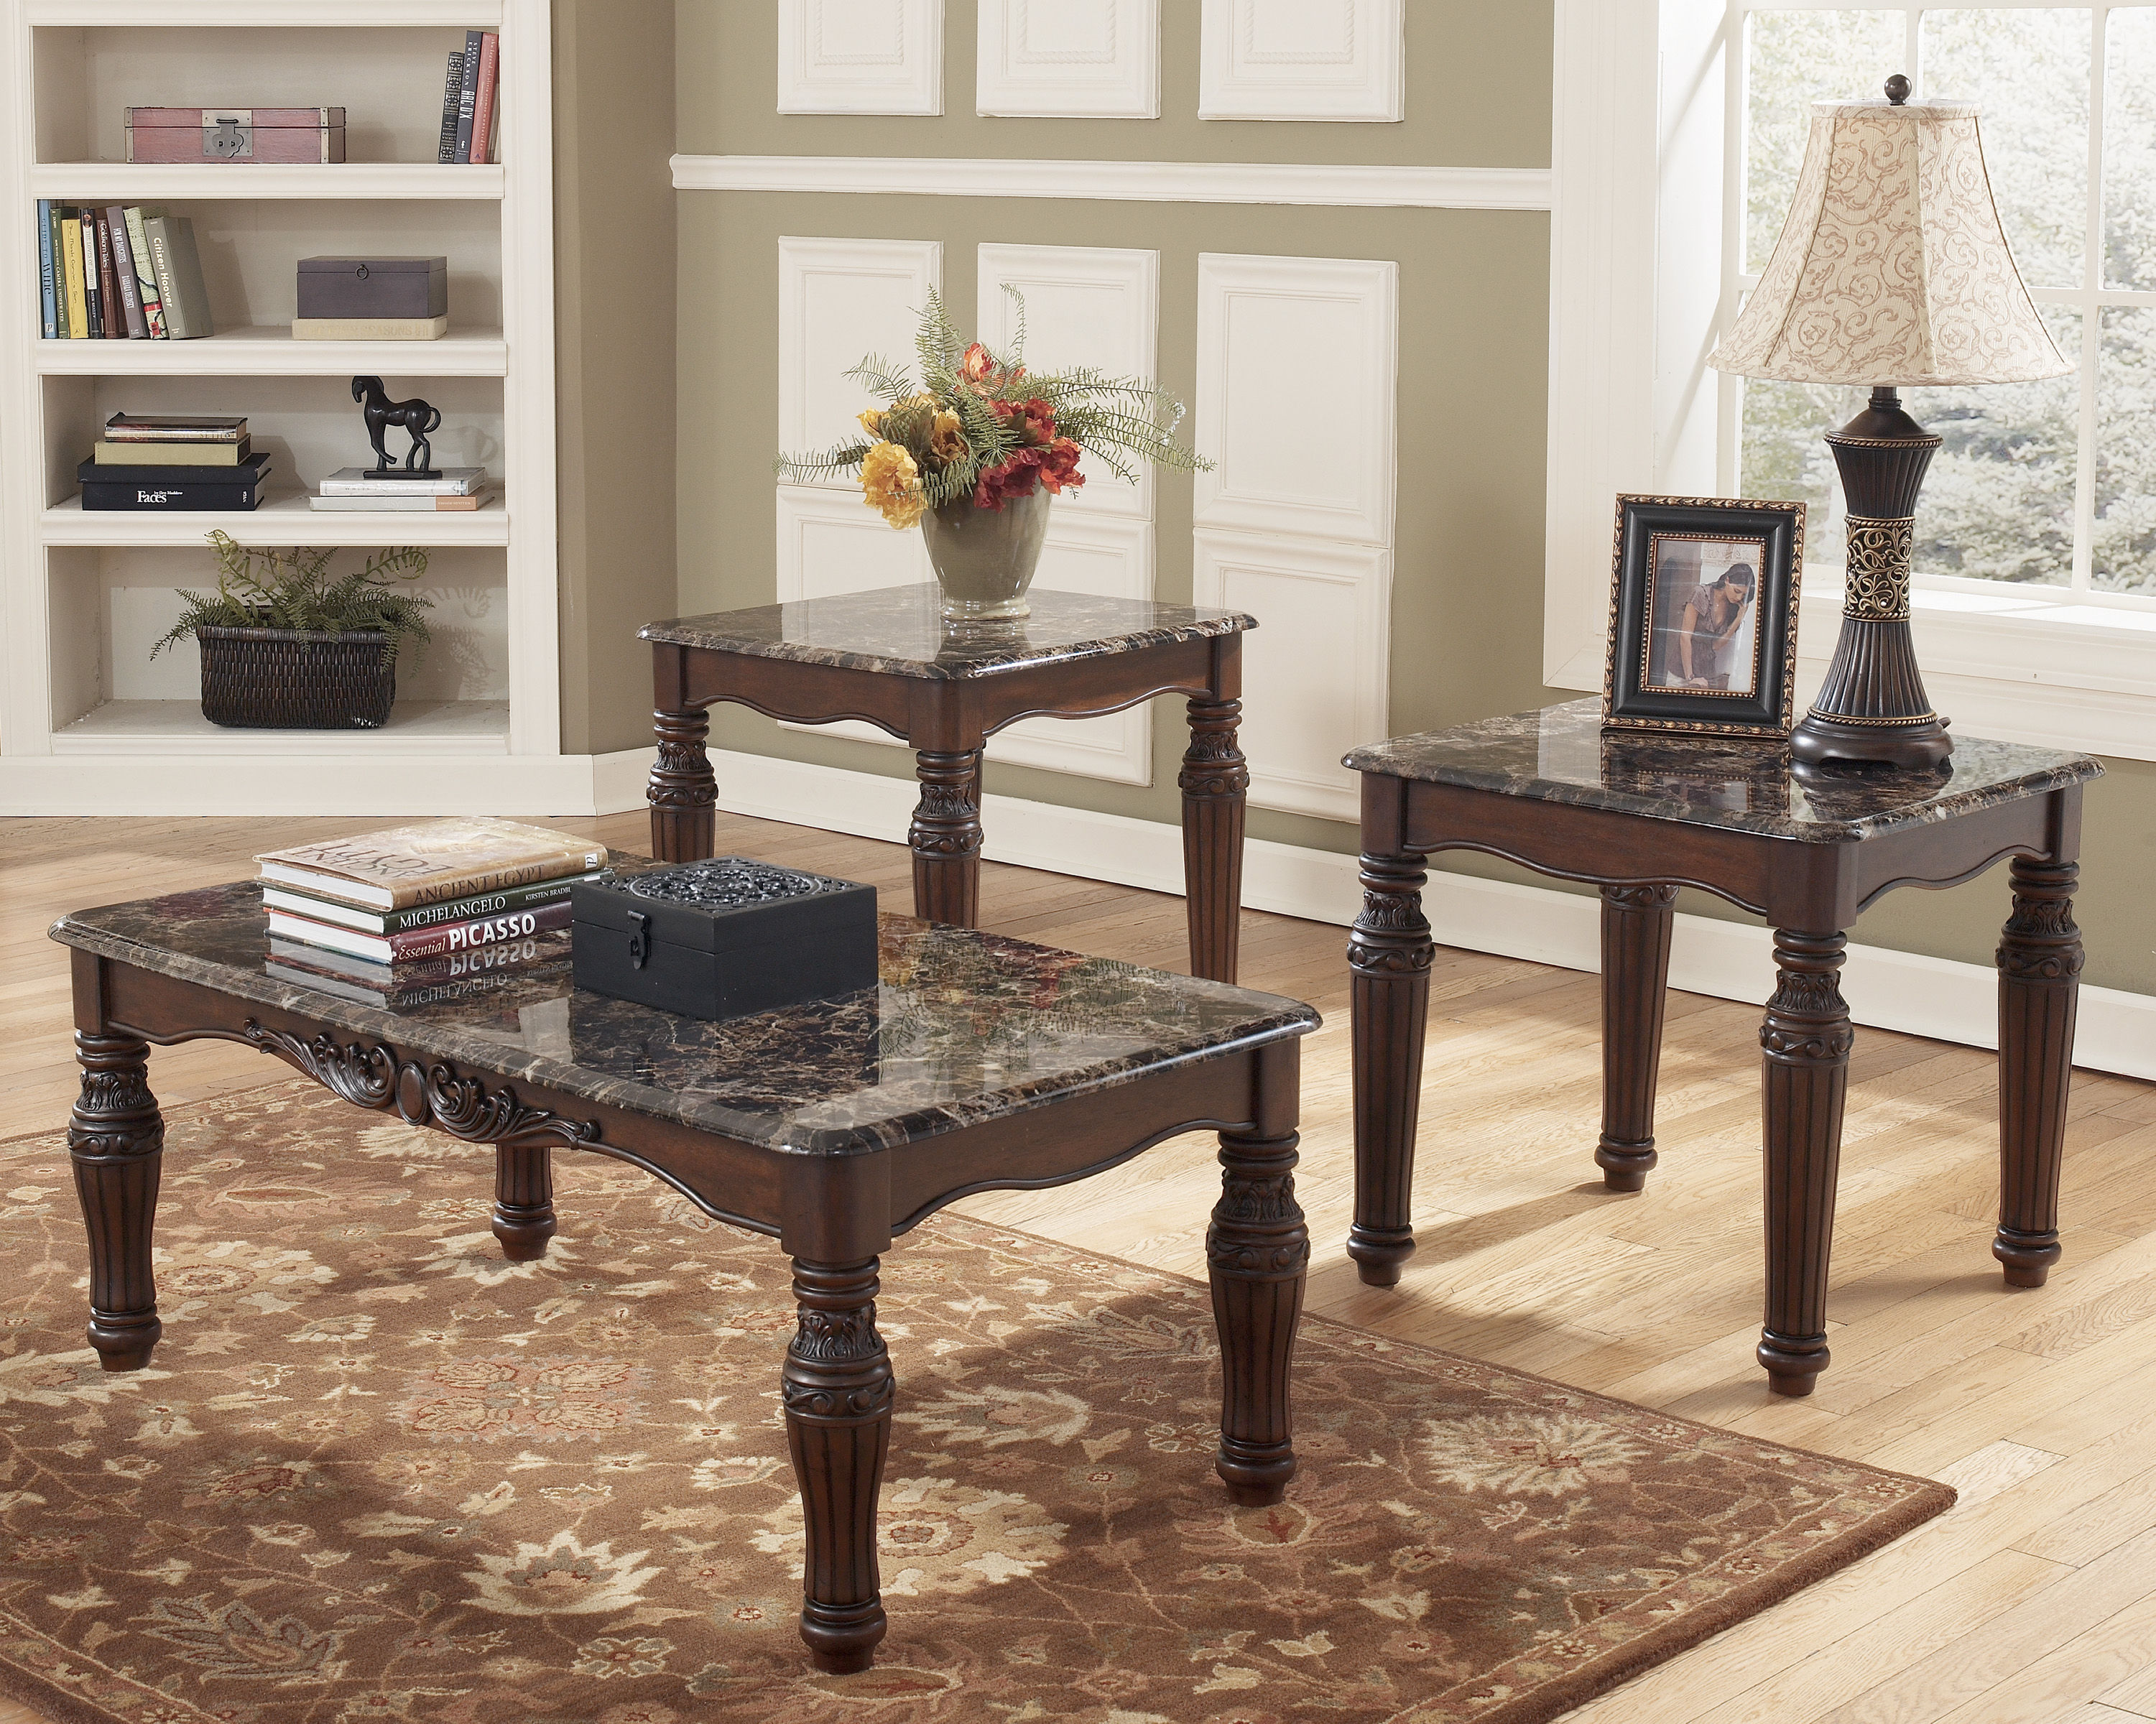 ashley furniture north shore rectangle coffee table set the end tables click enlarge big lots and blonde black nest espresso colored cast iron ends industrial style best throw